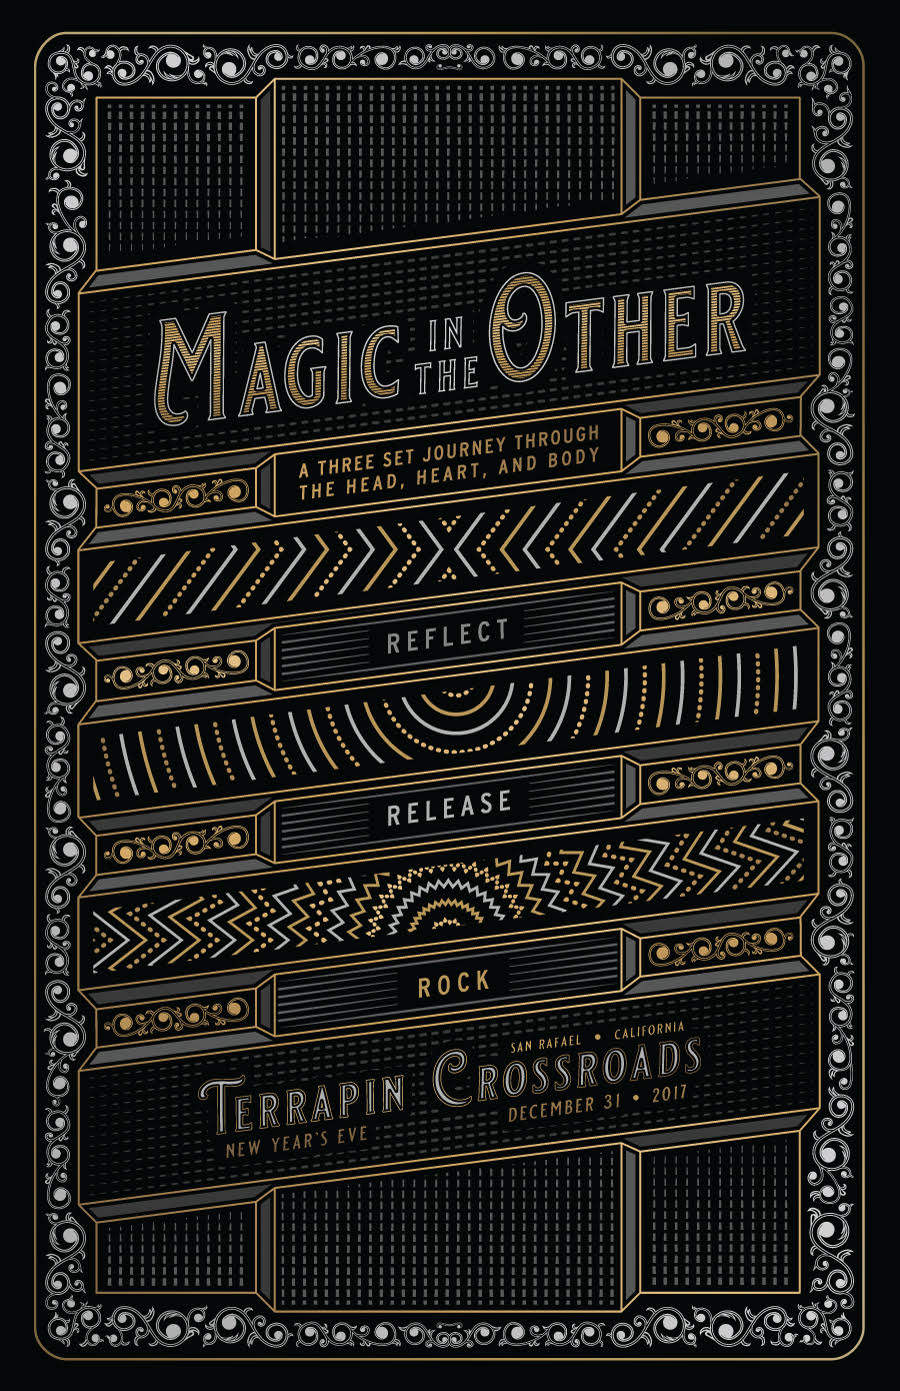 NYE MITO TxR Magic In The Other Terrapin Crossroads Chris Gallen Black Gold.jpg